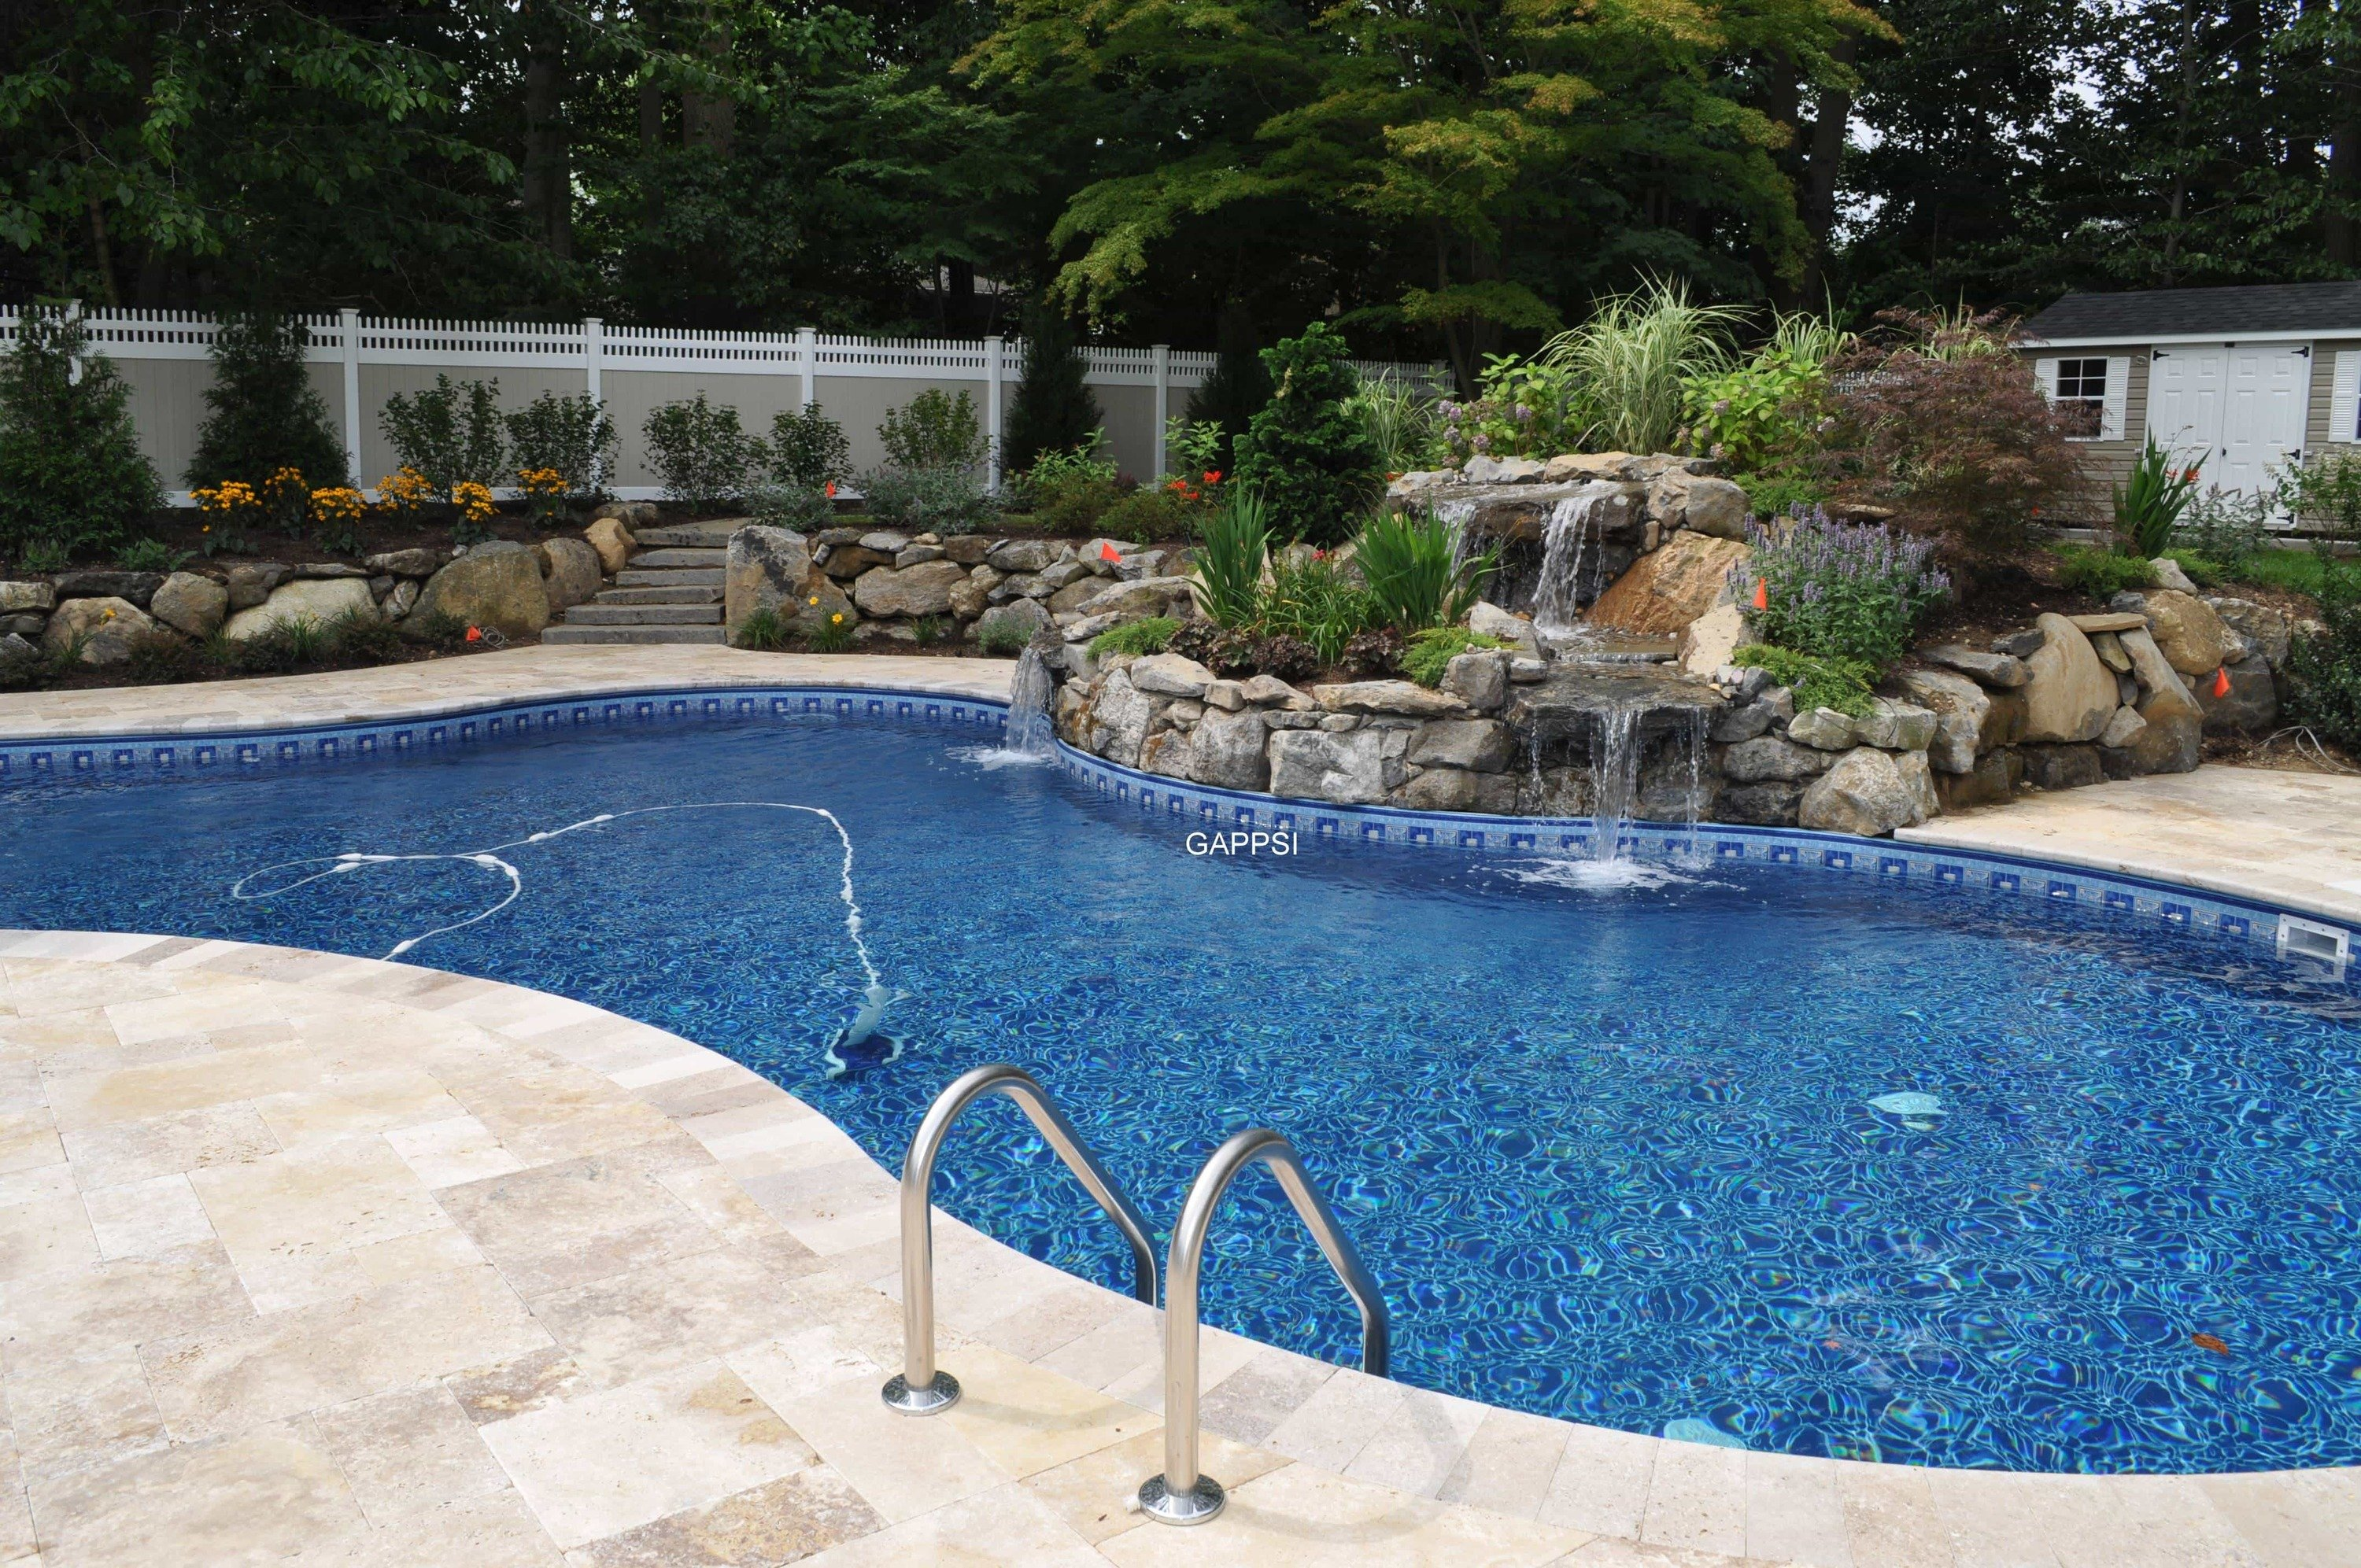 Outdoor Water Features  Pool Landscaping  Gappsi